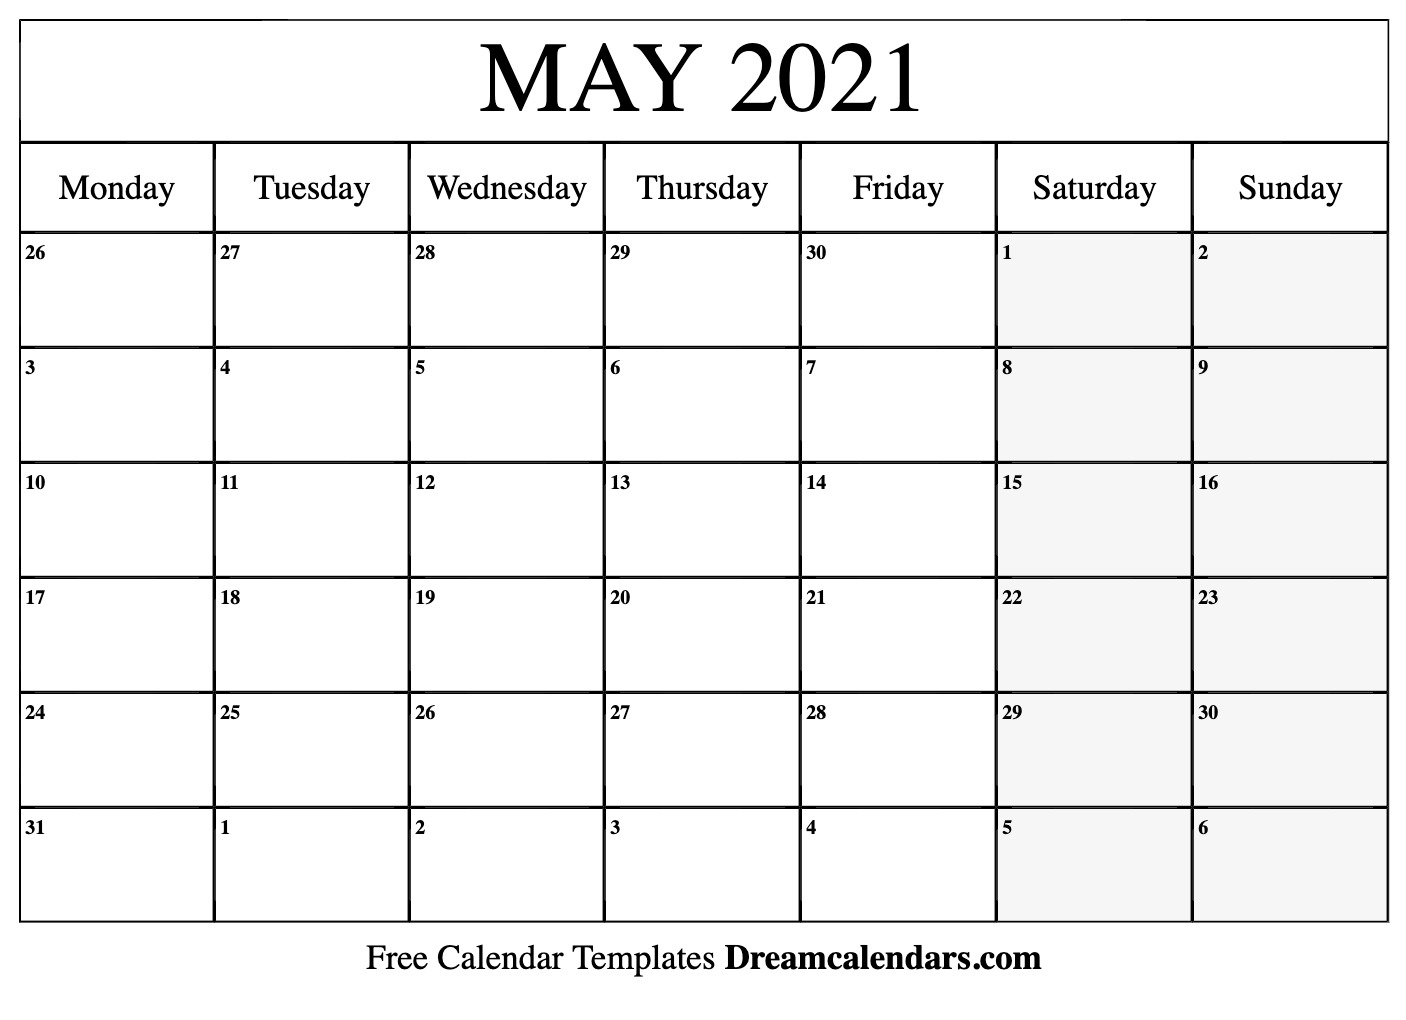 May 2021 Printable Calendar | Dream Calendars